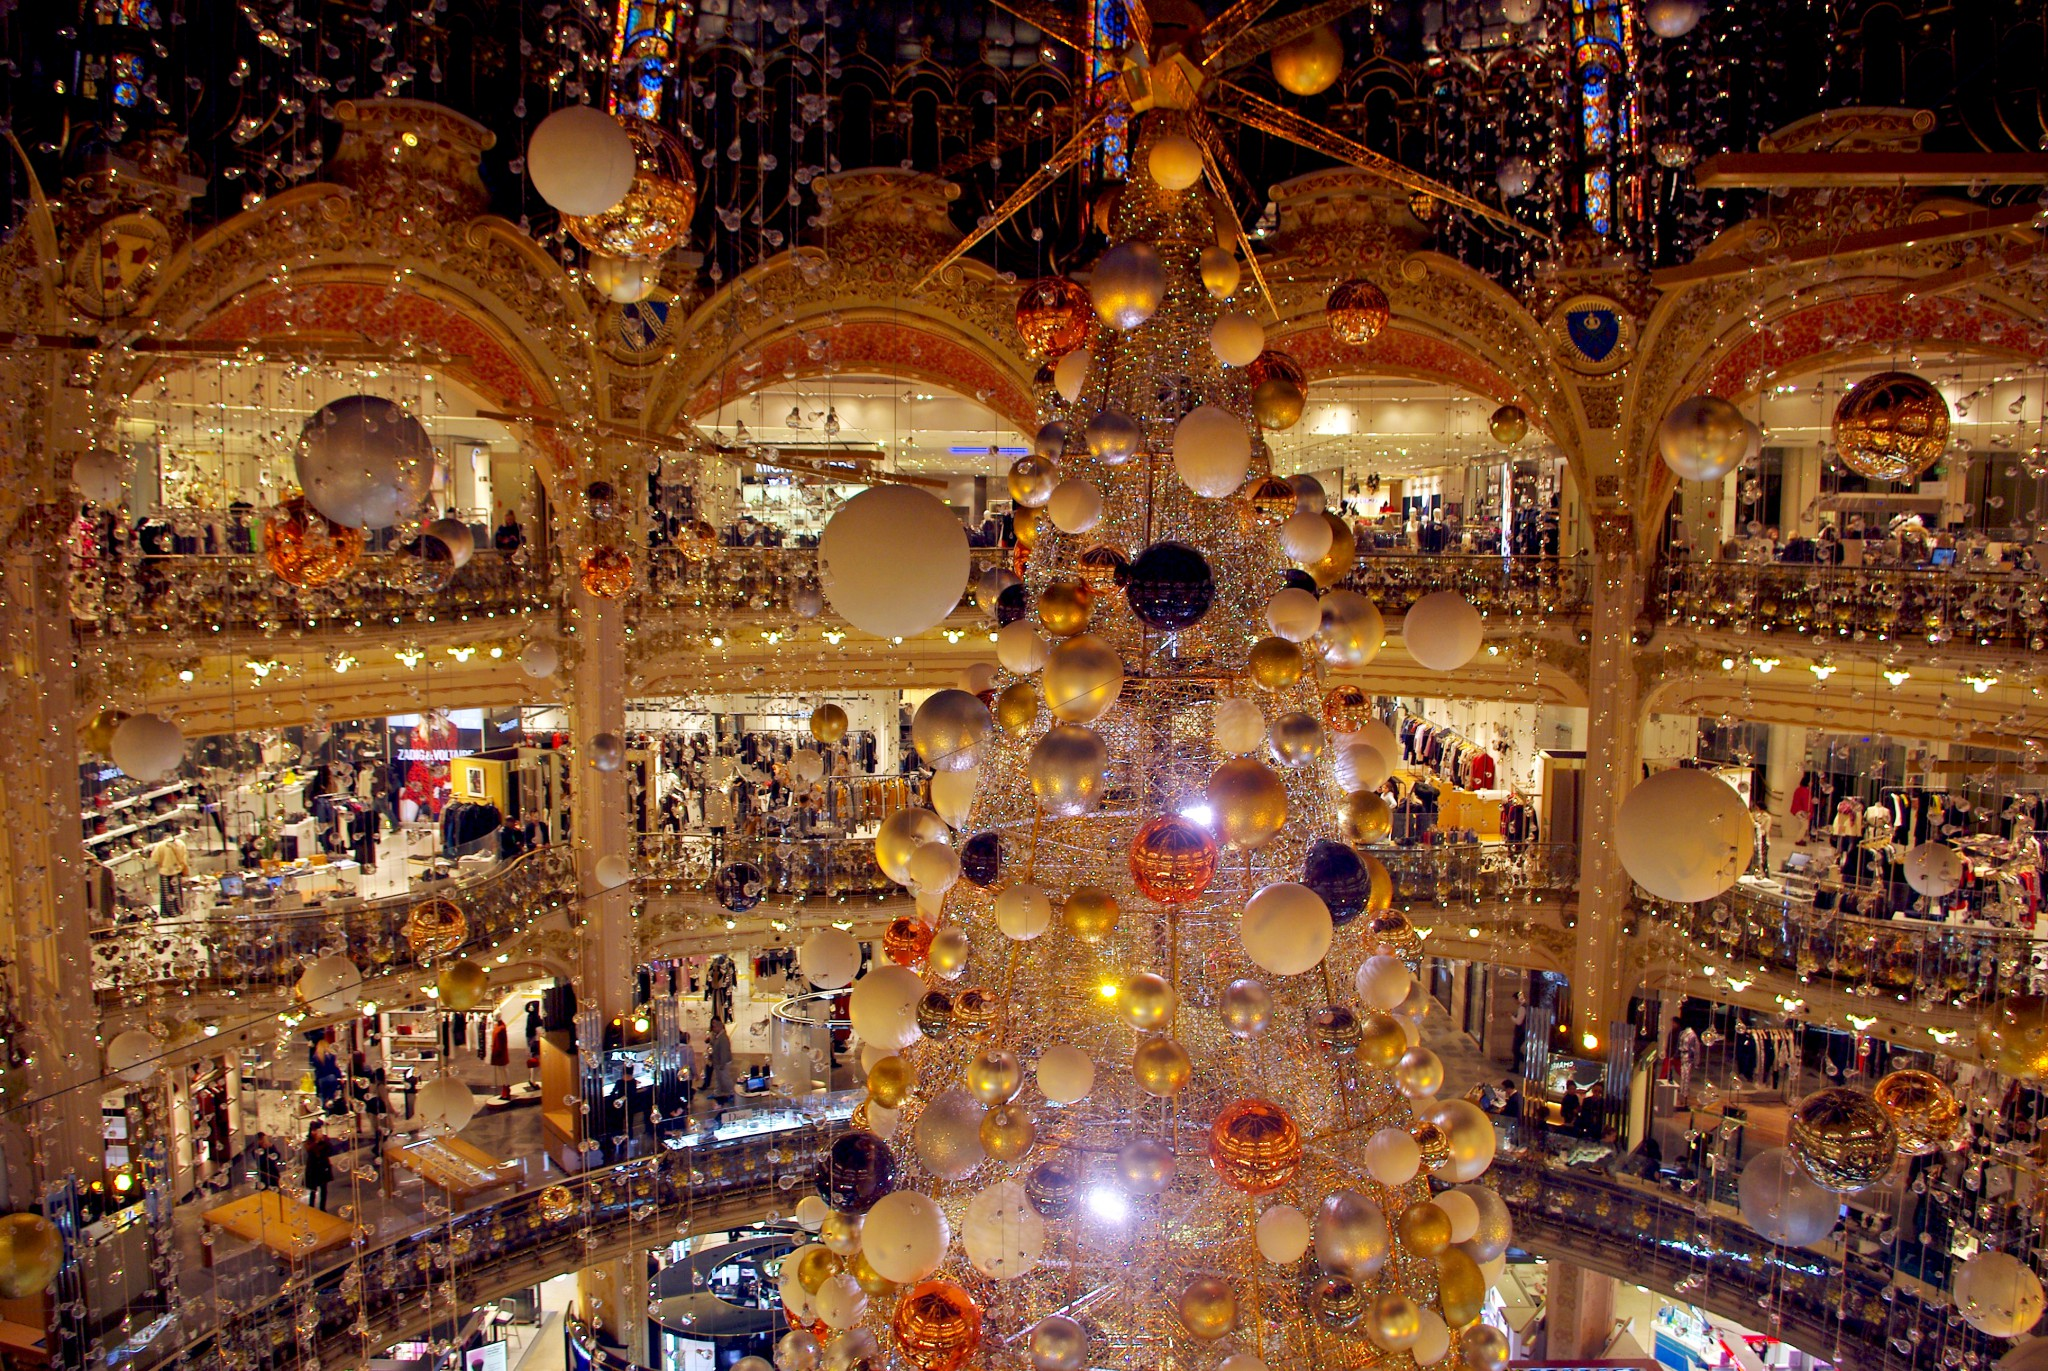 #B23E19 Christmas At Galeries Lafayette Haussmann In 2015 French  5433 décorations de noel galeries lafayette 2014 2048x1371 px @ aertt.com